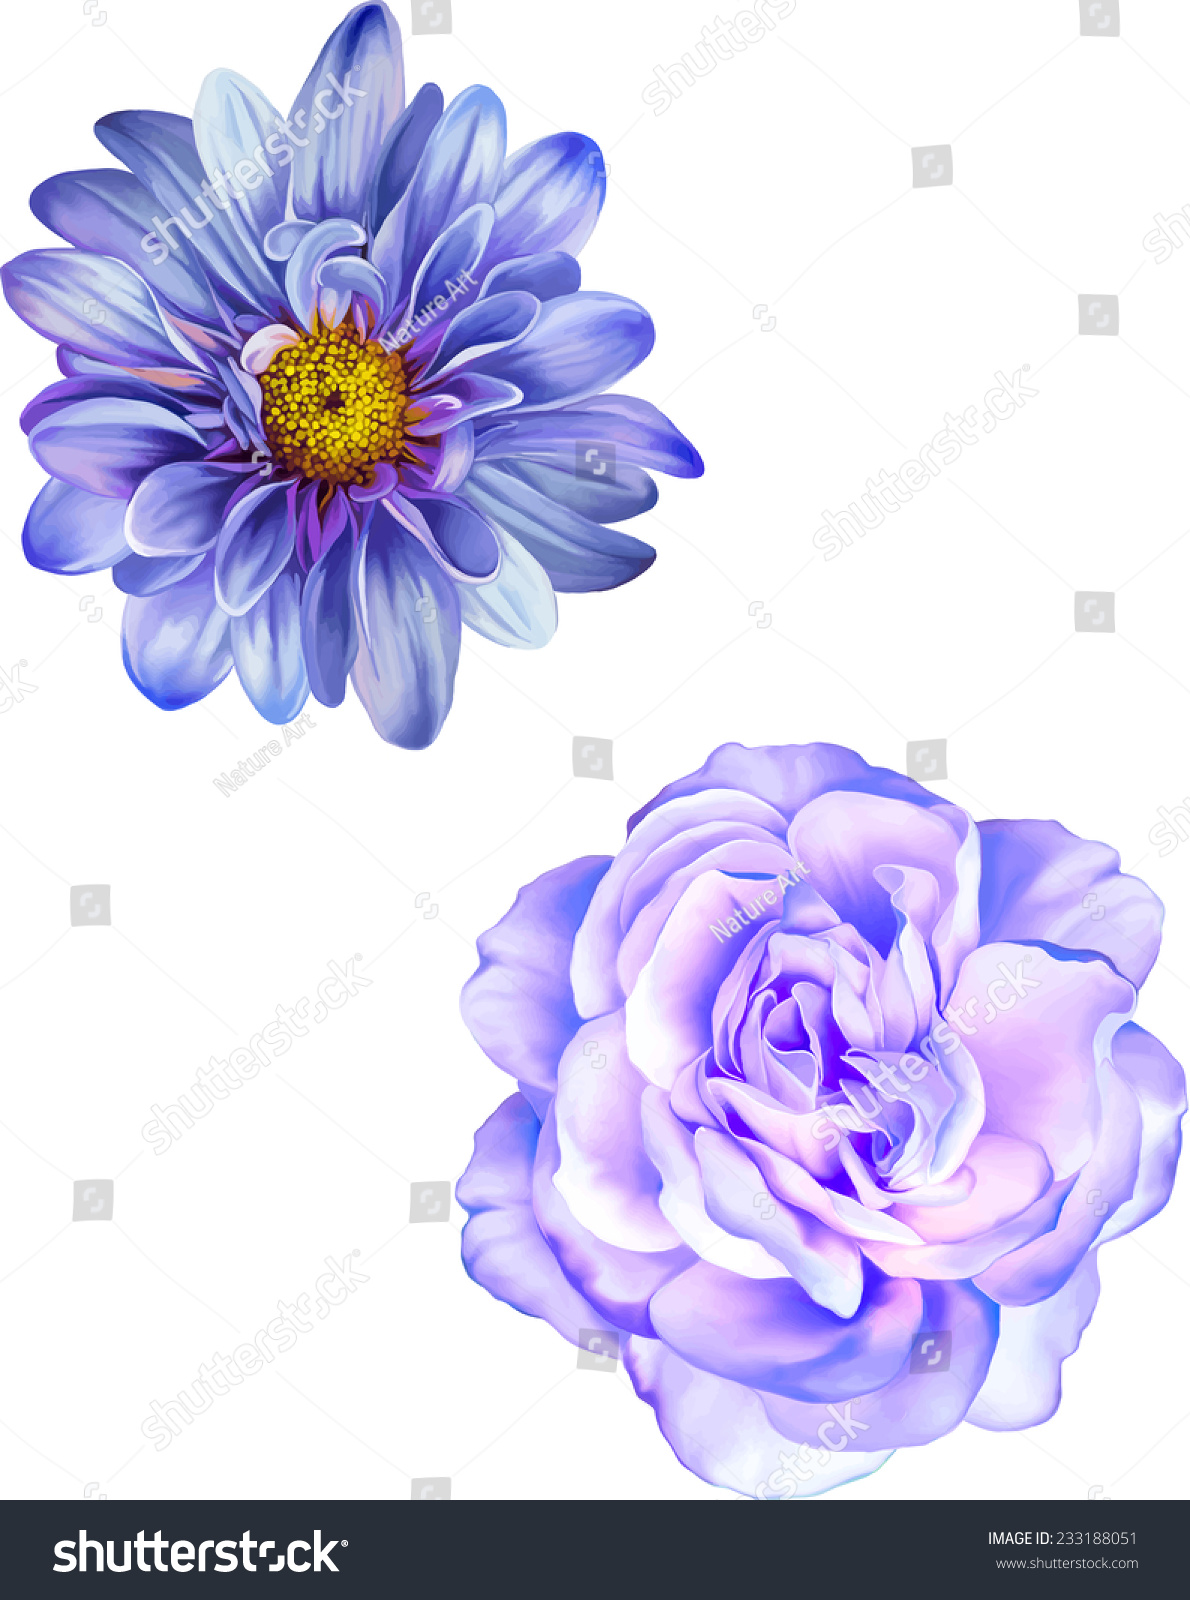 Blue mona lisa flower purple rose stock vector 233188051 blue mona lisa flower purple rose flower blue spring flowers isolated on white dhlflorist Choice Image